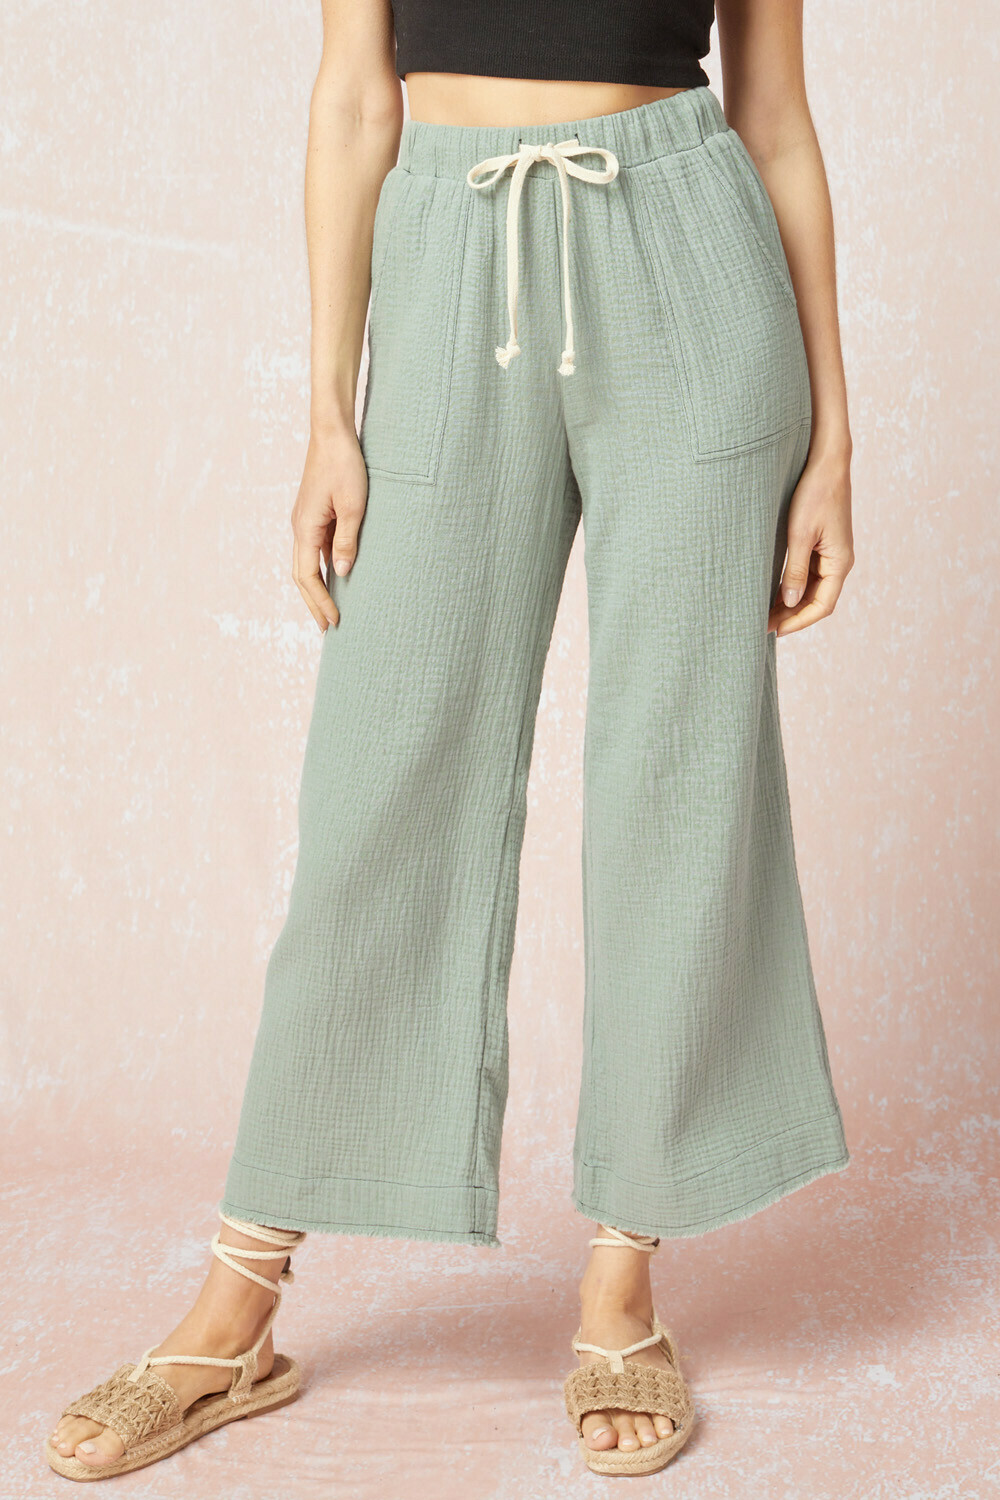 Relaxing Days Pants